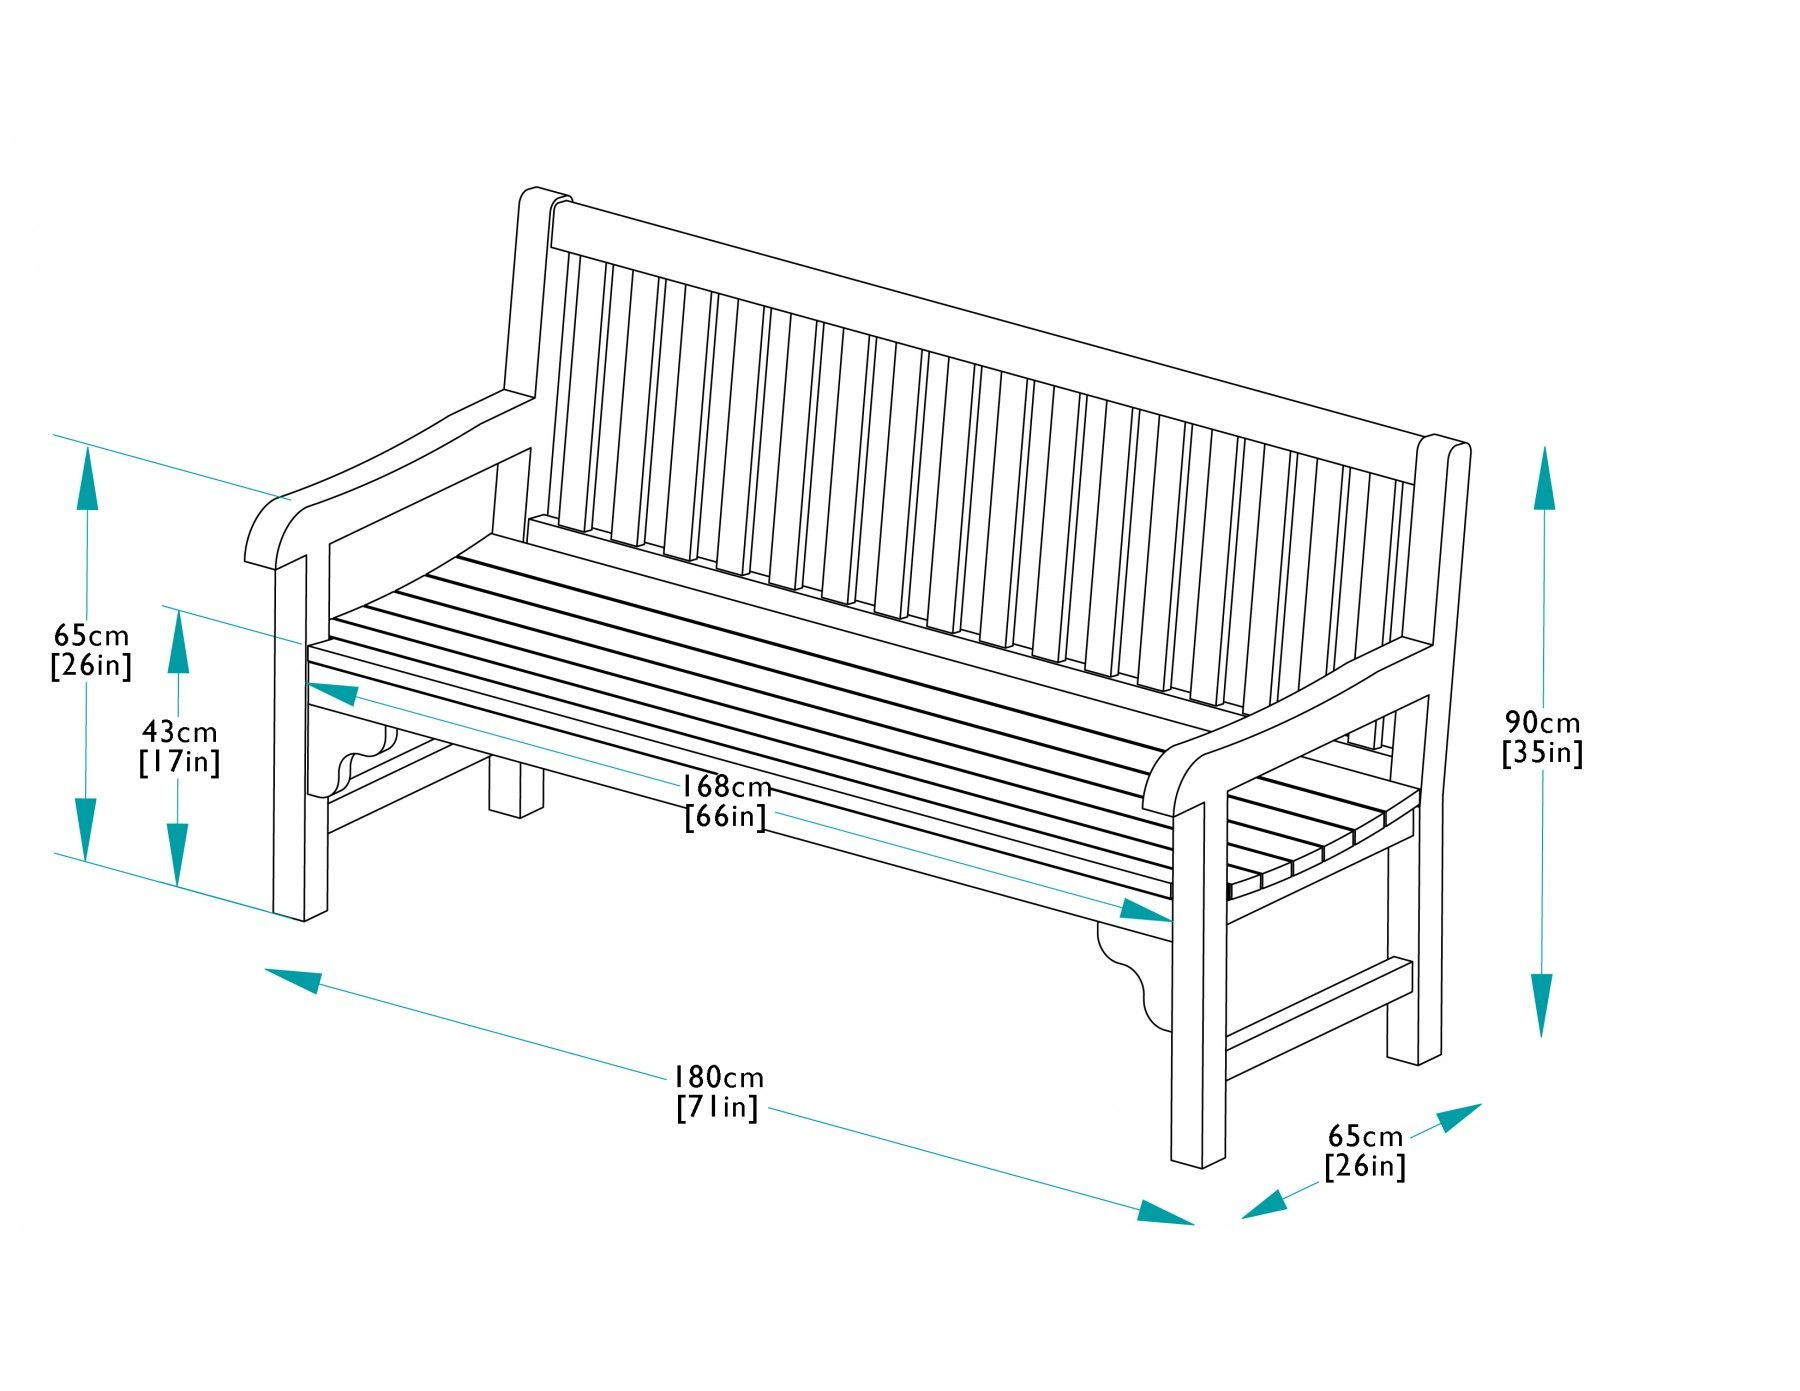 Image Result For Seat Garden Dimensions Cm Outdoor Furniture Seating Decor